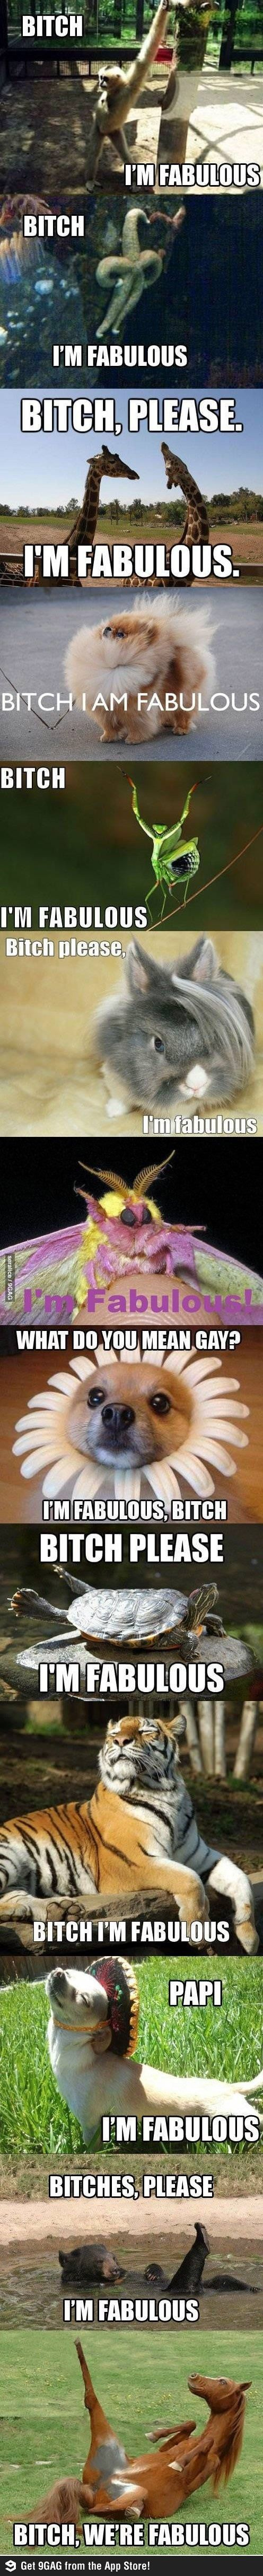 Bitch - I am fabulous...reminds me of momma. miss her more and more every day,